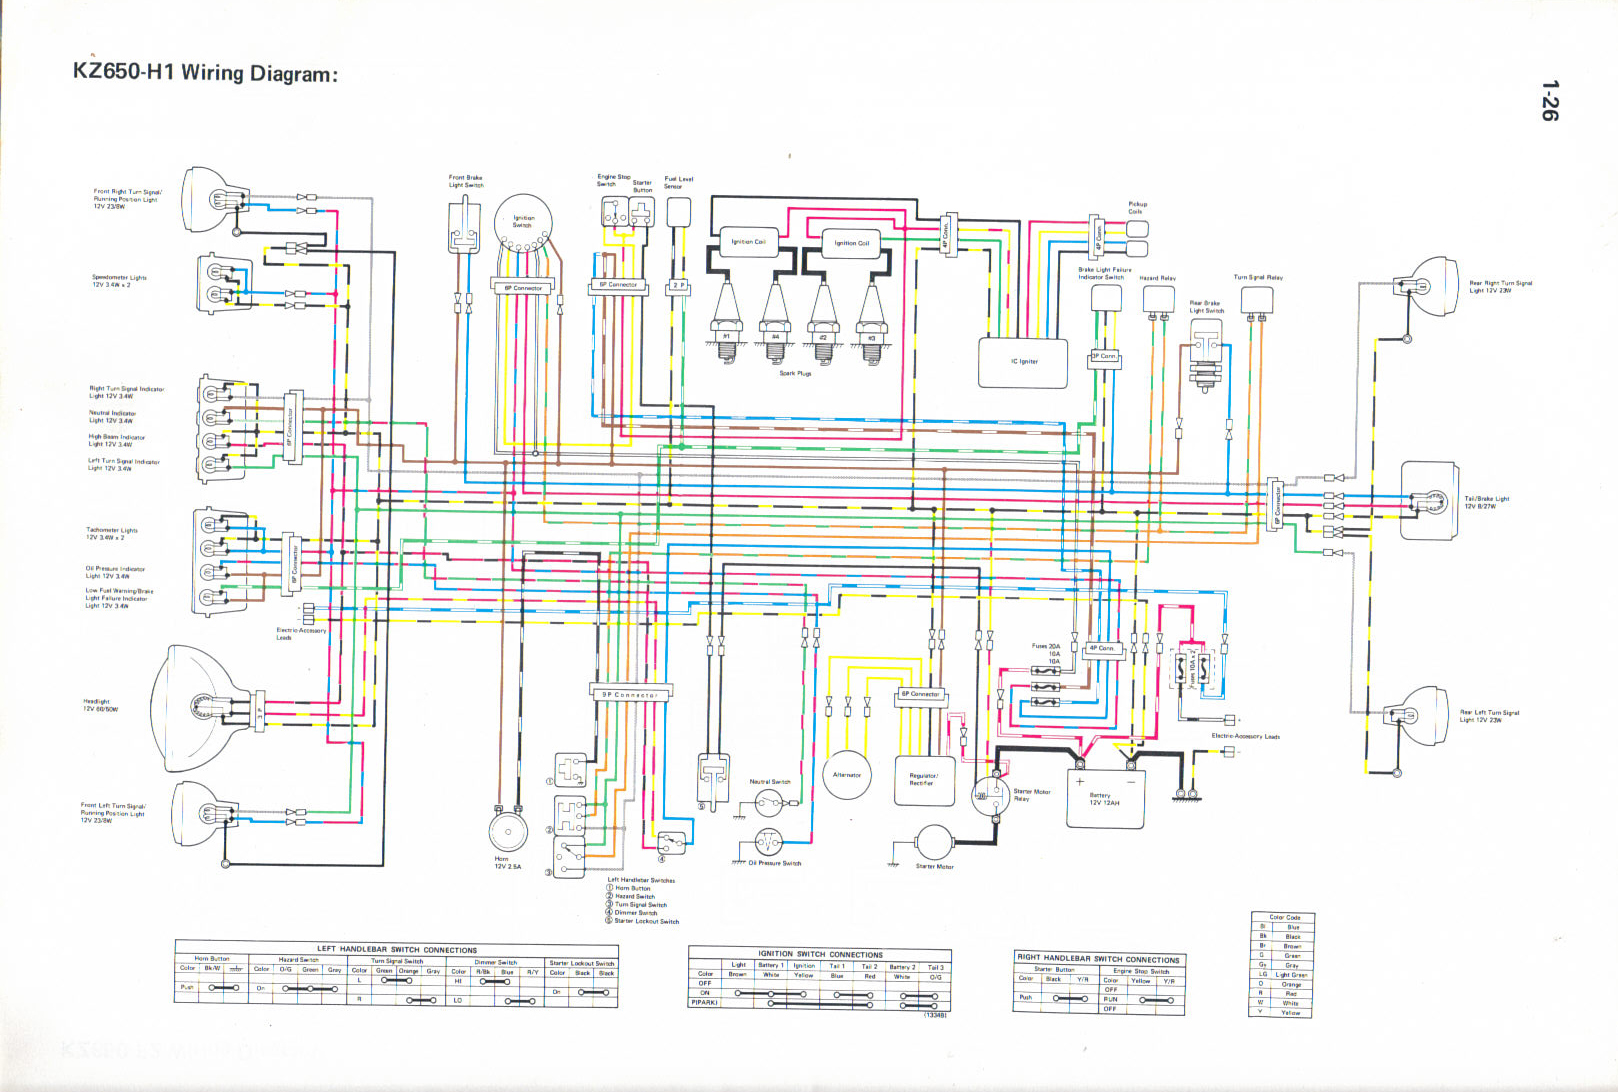 Kawasaki Electrical Wiring Diagram Libraries Zx12r Ninja Harness 1990 Voyager Diagrams Todays1982 200 Schematic Data